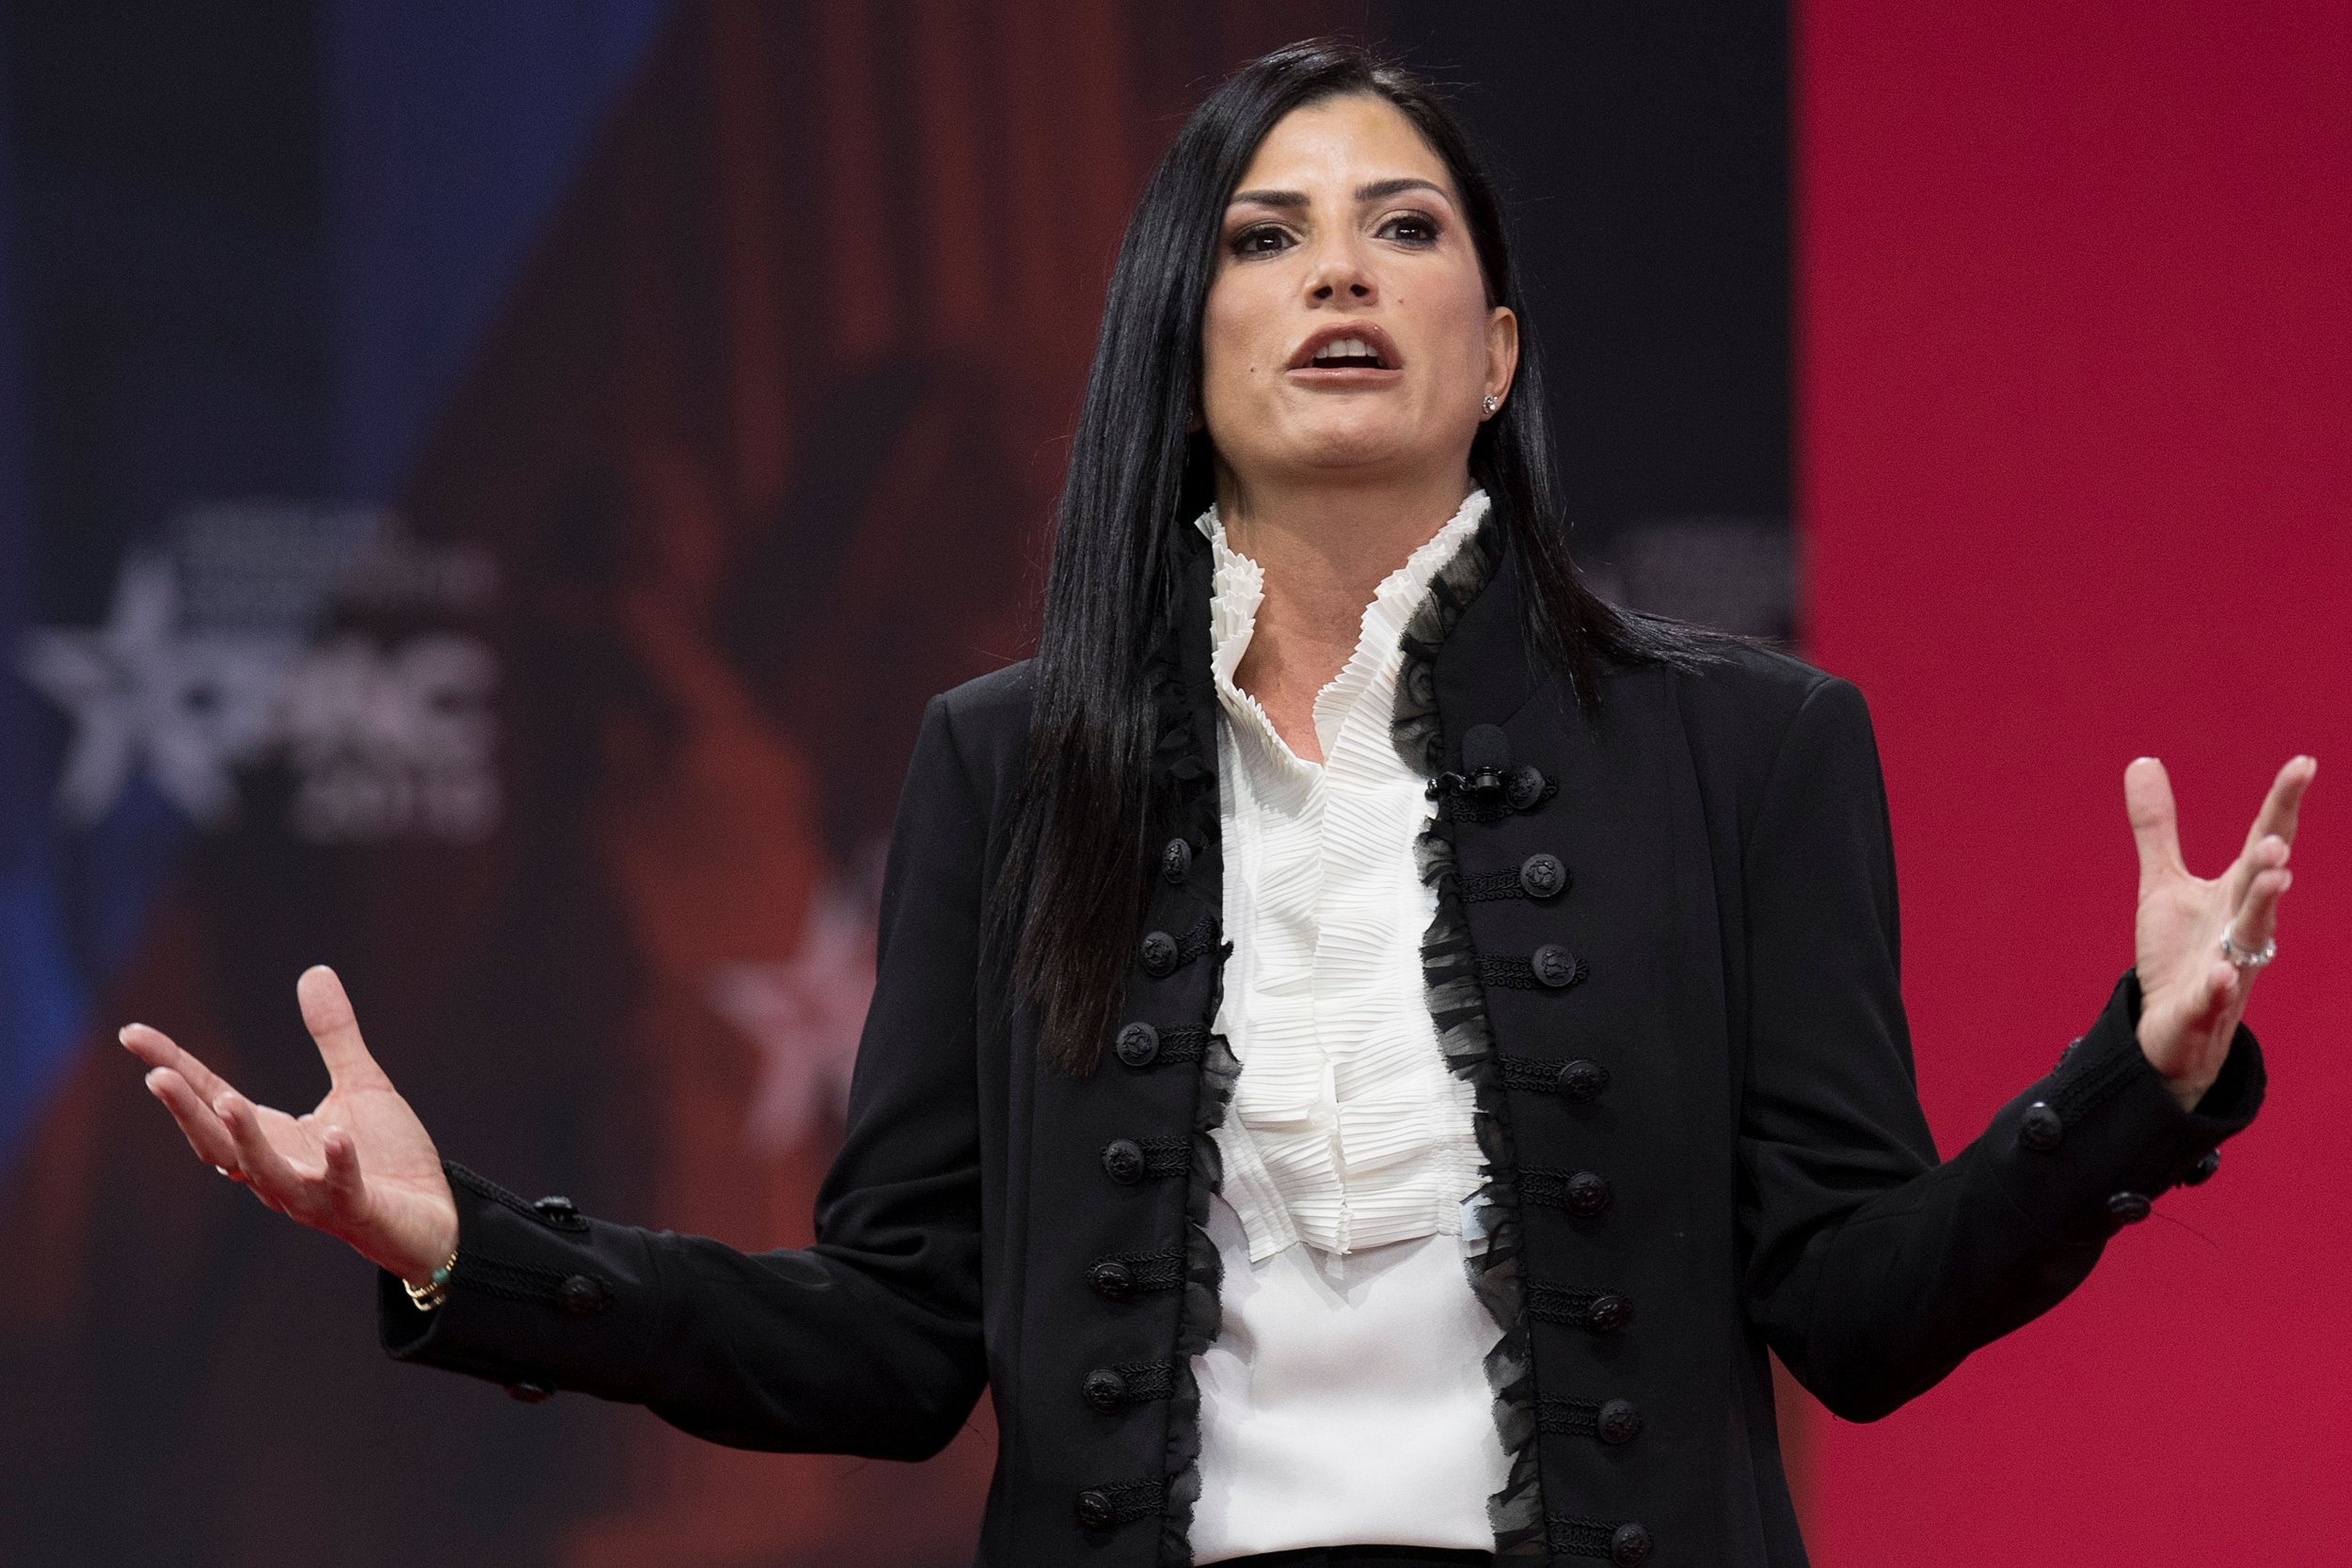 NRA Spokeswoman Dana Loesch: Women Should 'Stay in Their Lane' and